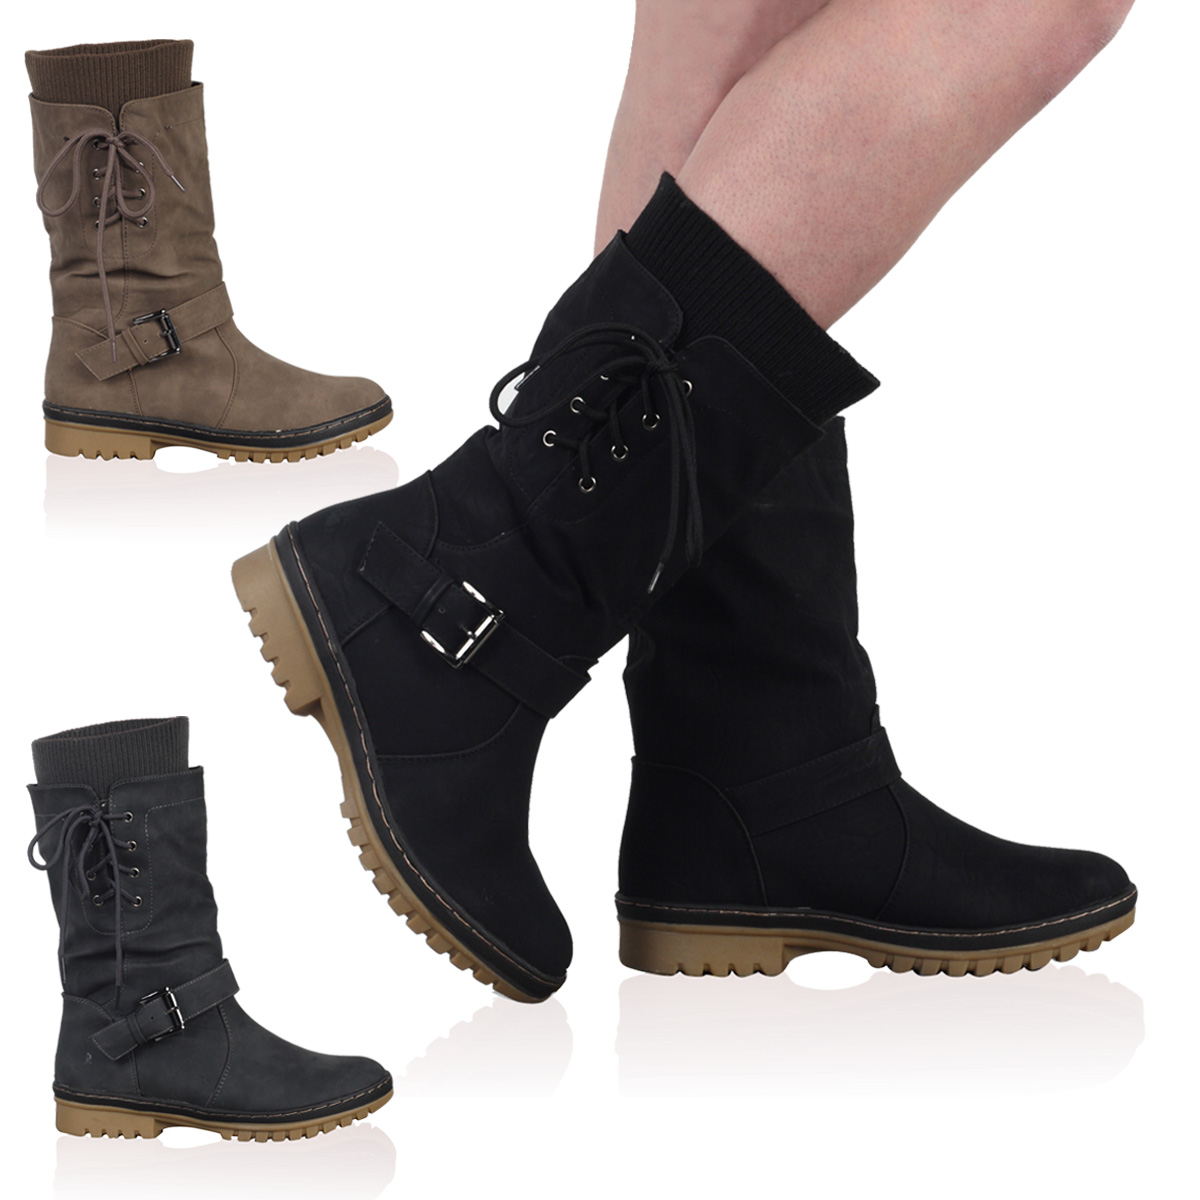 As the temperature drops, keep cozy in our best winter boots for women. Designed with warm linings and weather-resistant materials, these women's boots handle winter's worst with style. these women's boots handle winter's worst with style. Women / Shoes / Boots Women. Shoes All Shoes Running Lifestyle Training Walking Hiking.